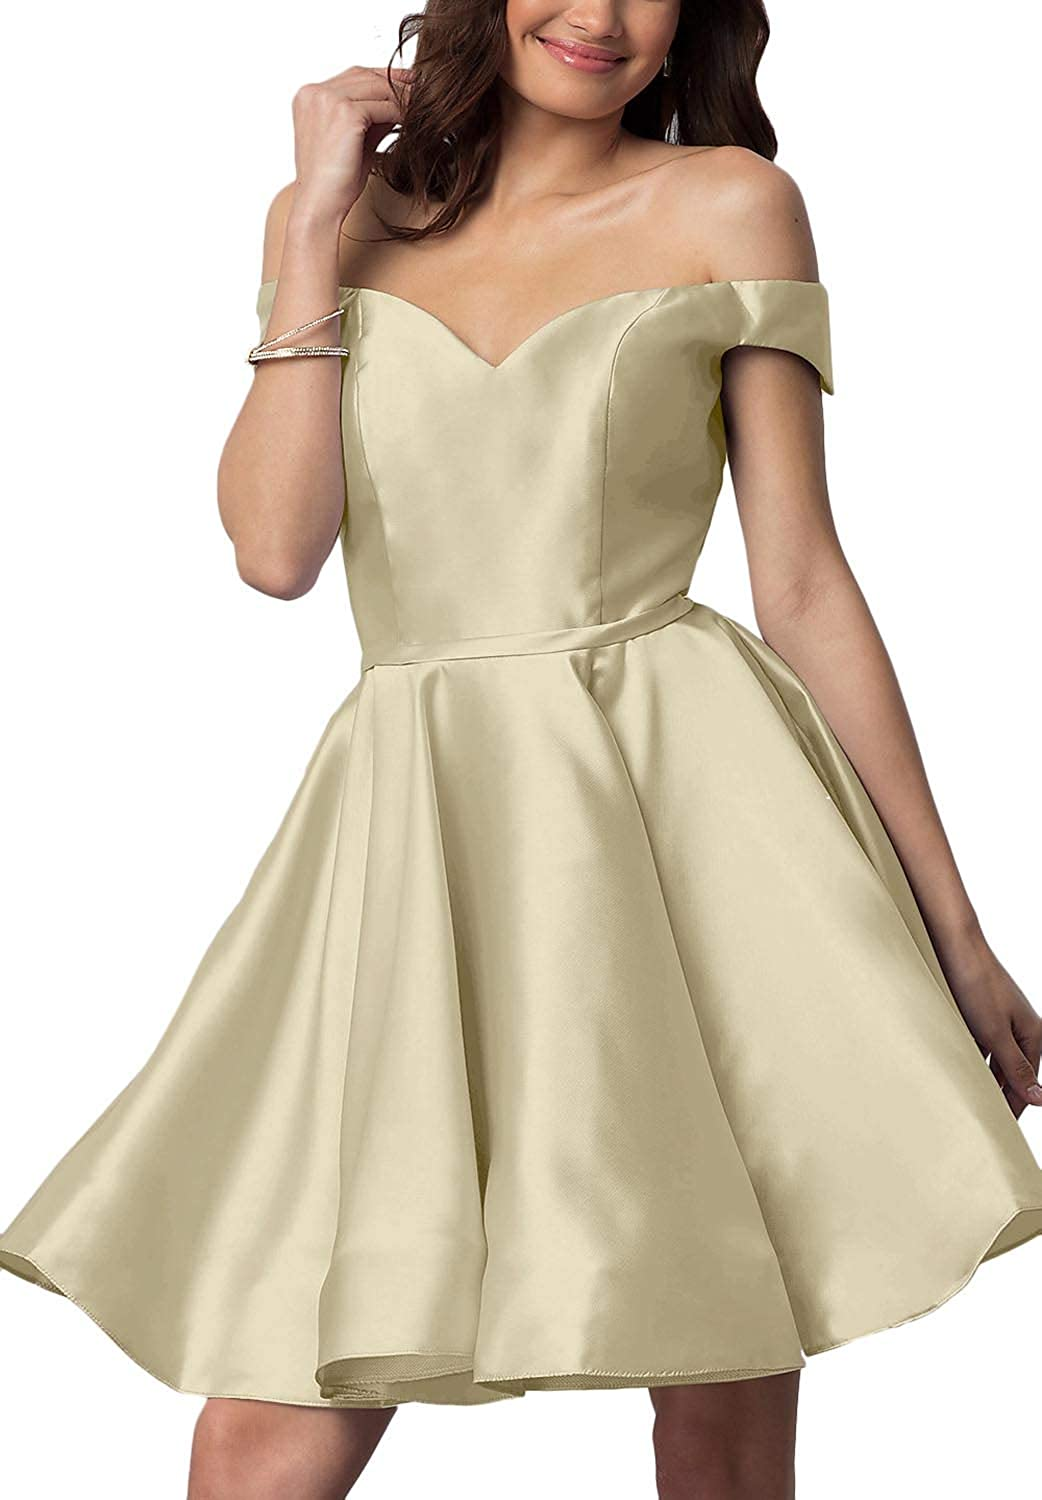 Champagne YnanLi Dress Short Off Shoulder Homecoming Dresses for Junior Cocktail Ball Gown with Pocket